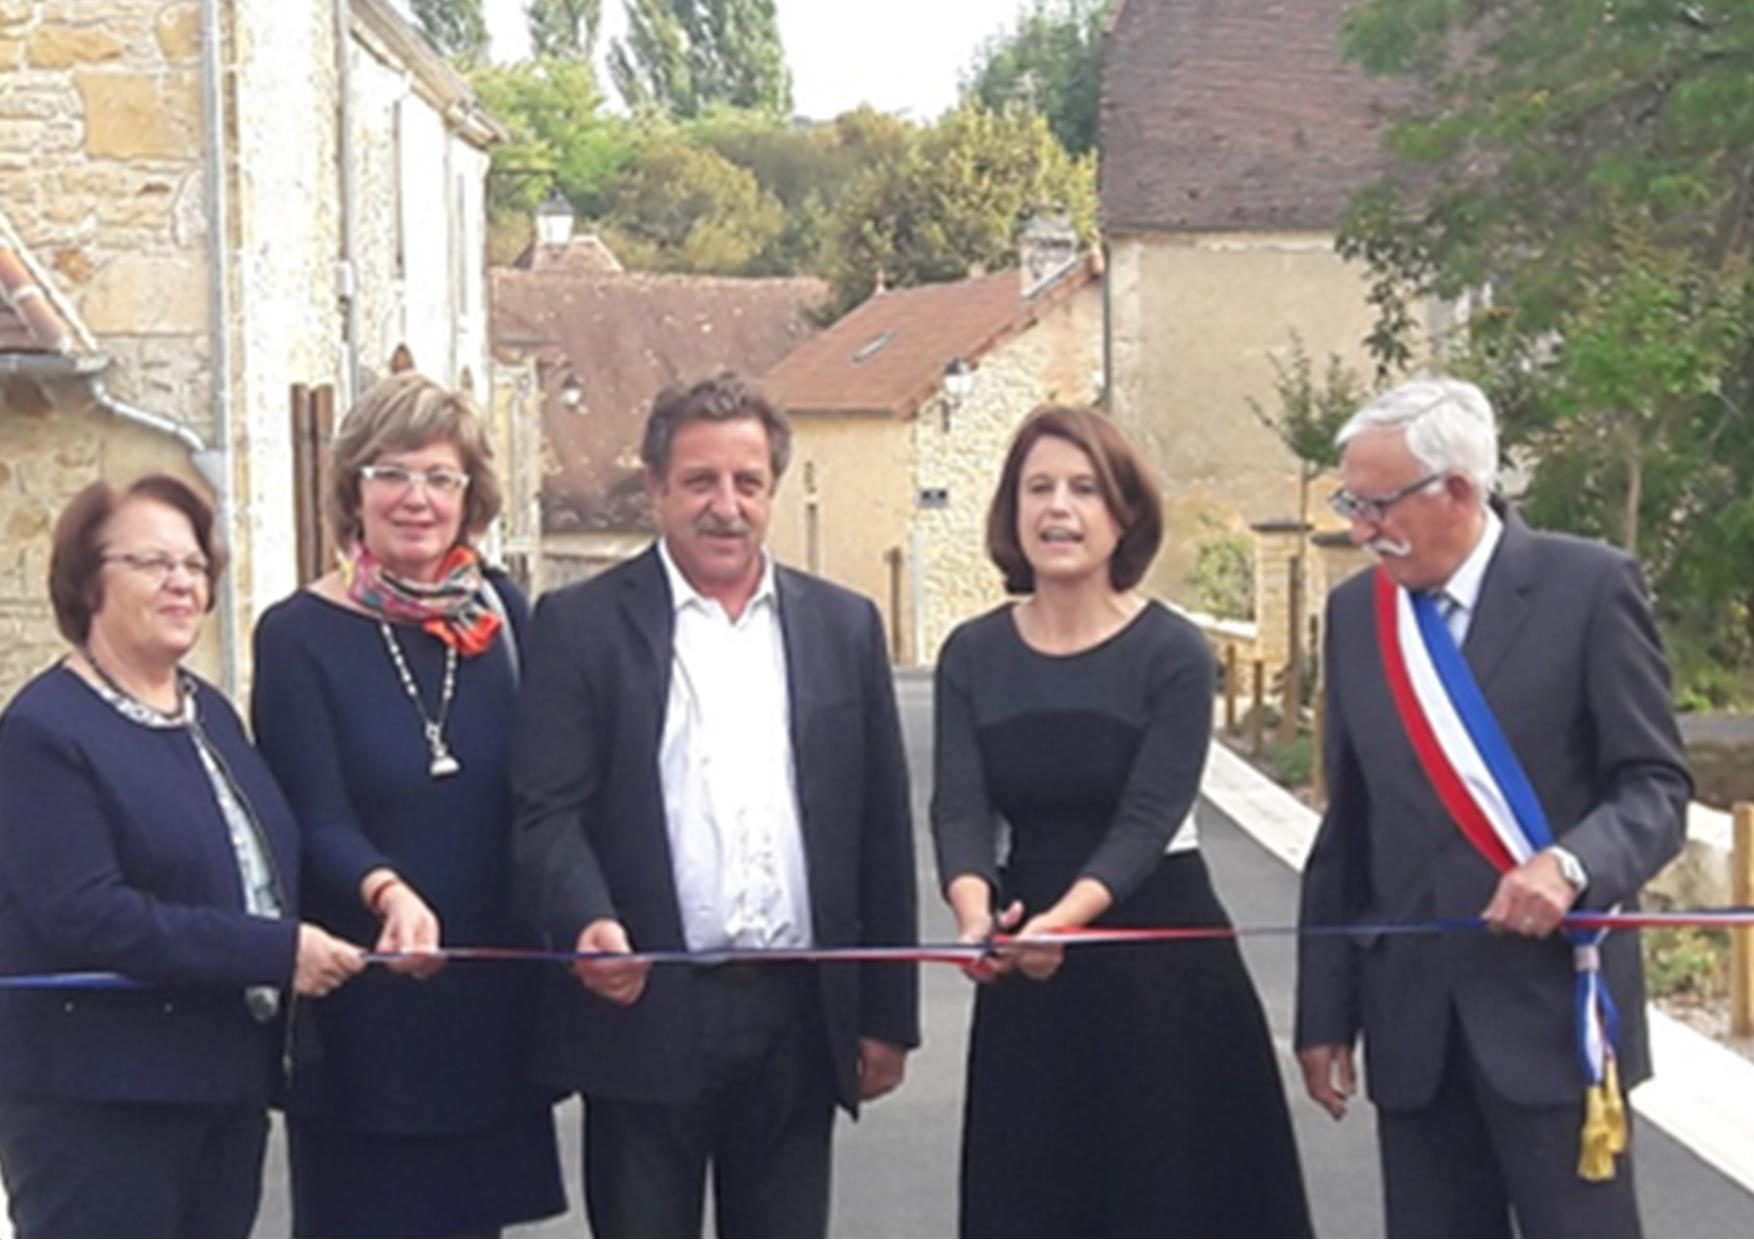 Excideuil : le bourg de St-Martial d'Albarède